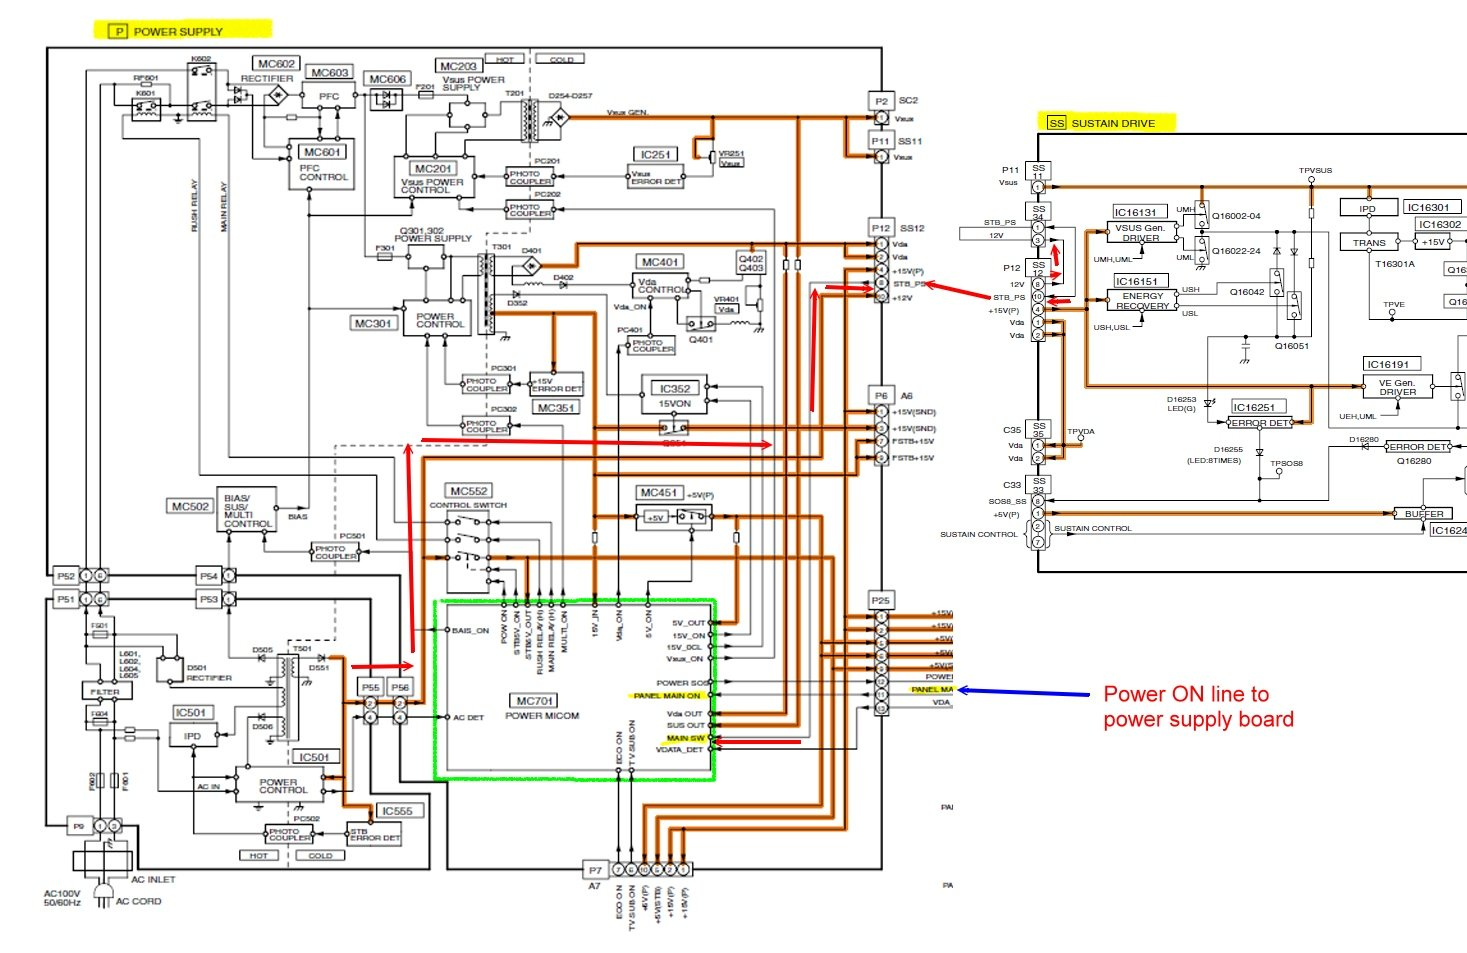 Samsung Lcd Tv Service Manual Schematic Diagrams Manuell Zone Wiring Diagram Free Download